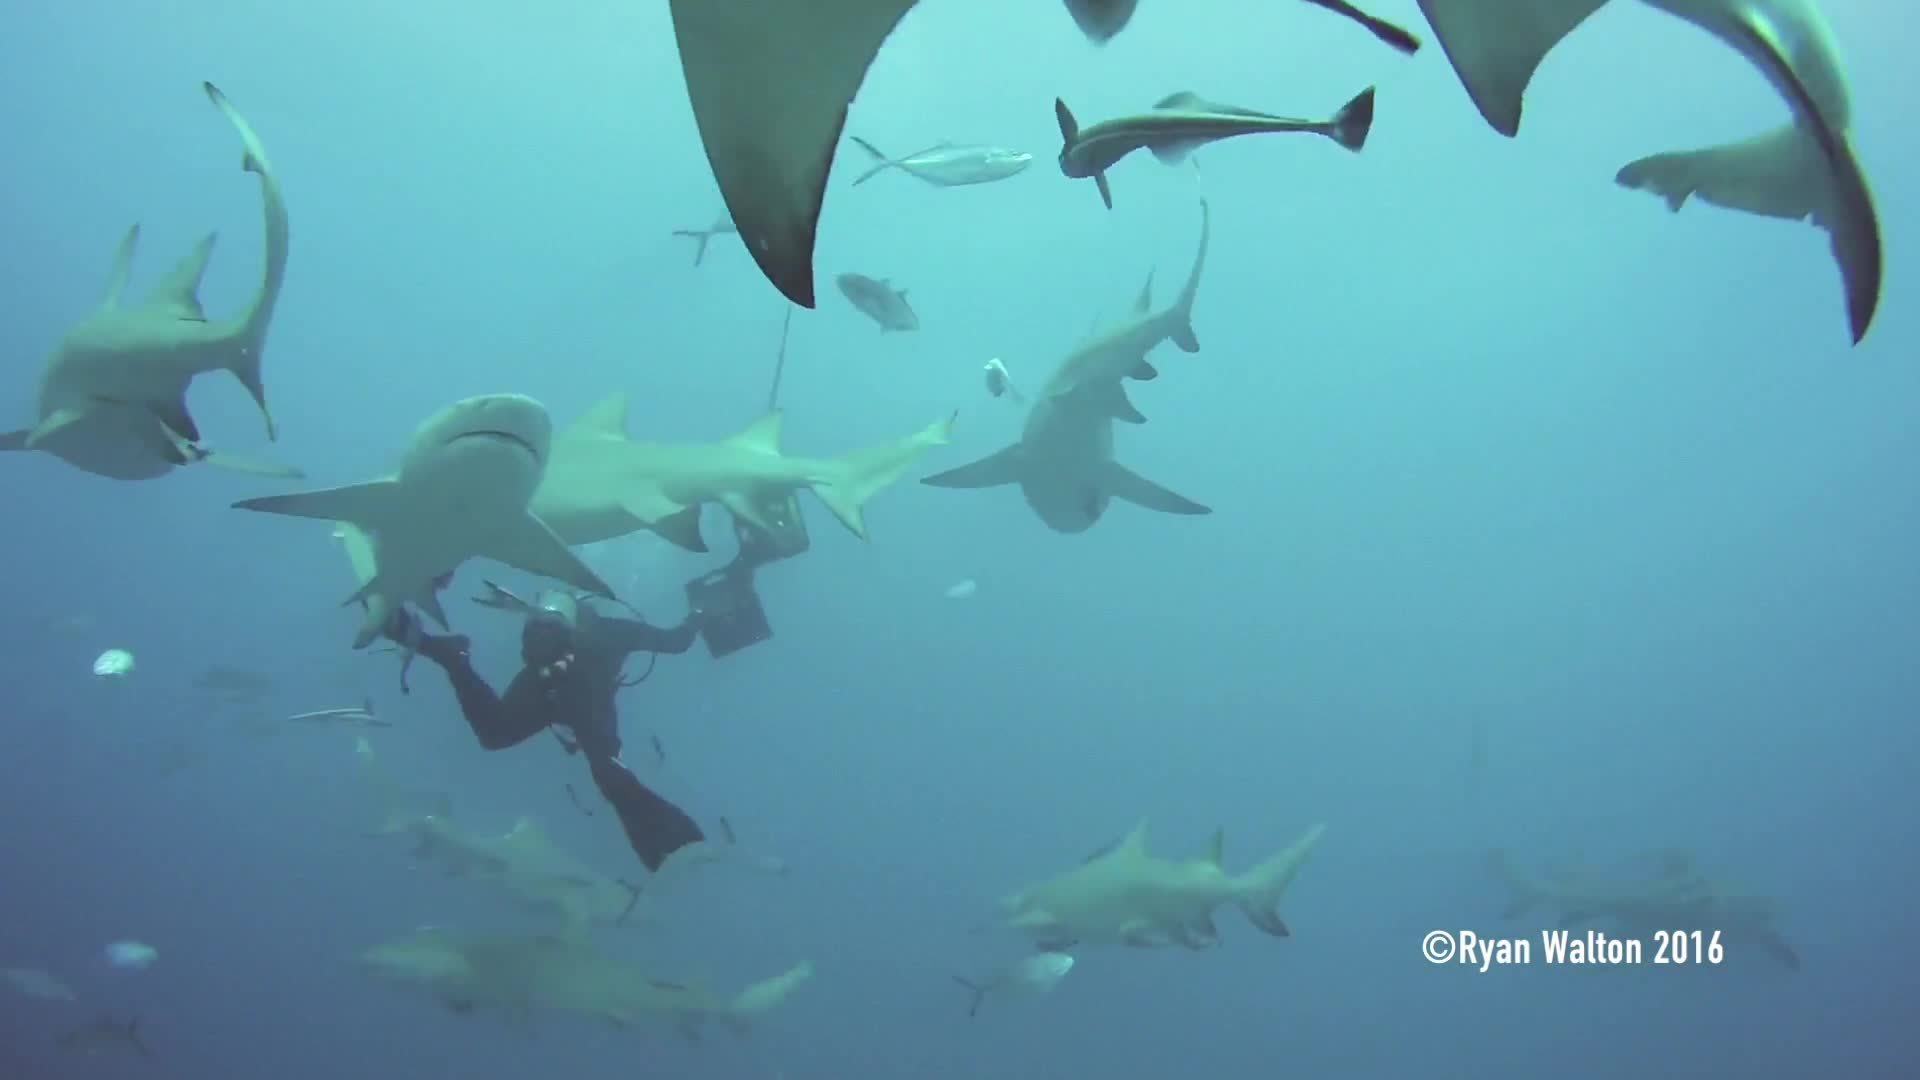 gifs, sharks, thedepthsbelow, Swimming midwater with about a dozen sharks surrounding you. GIFs